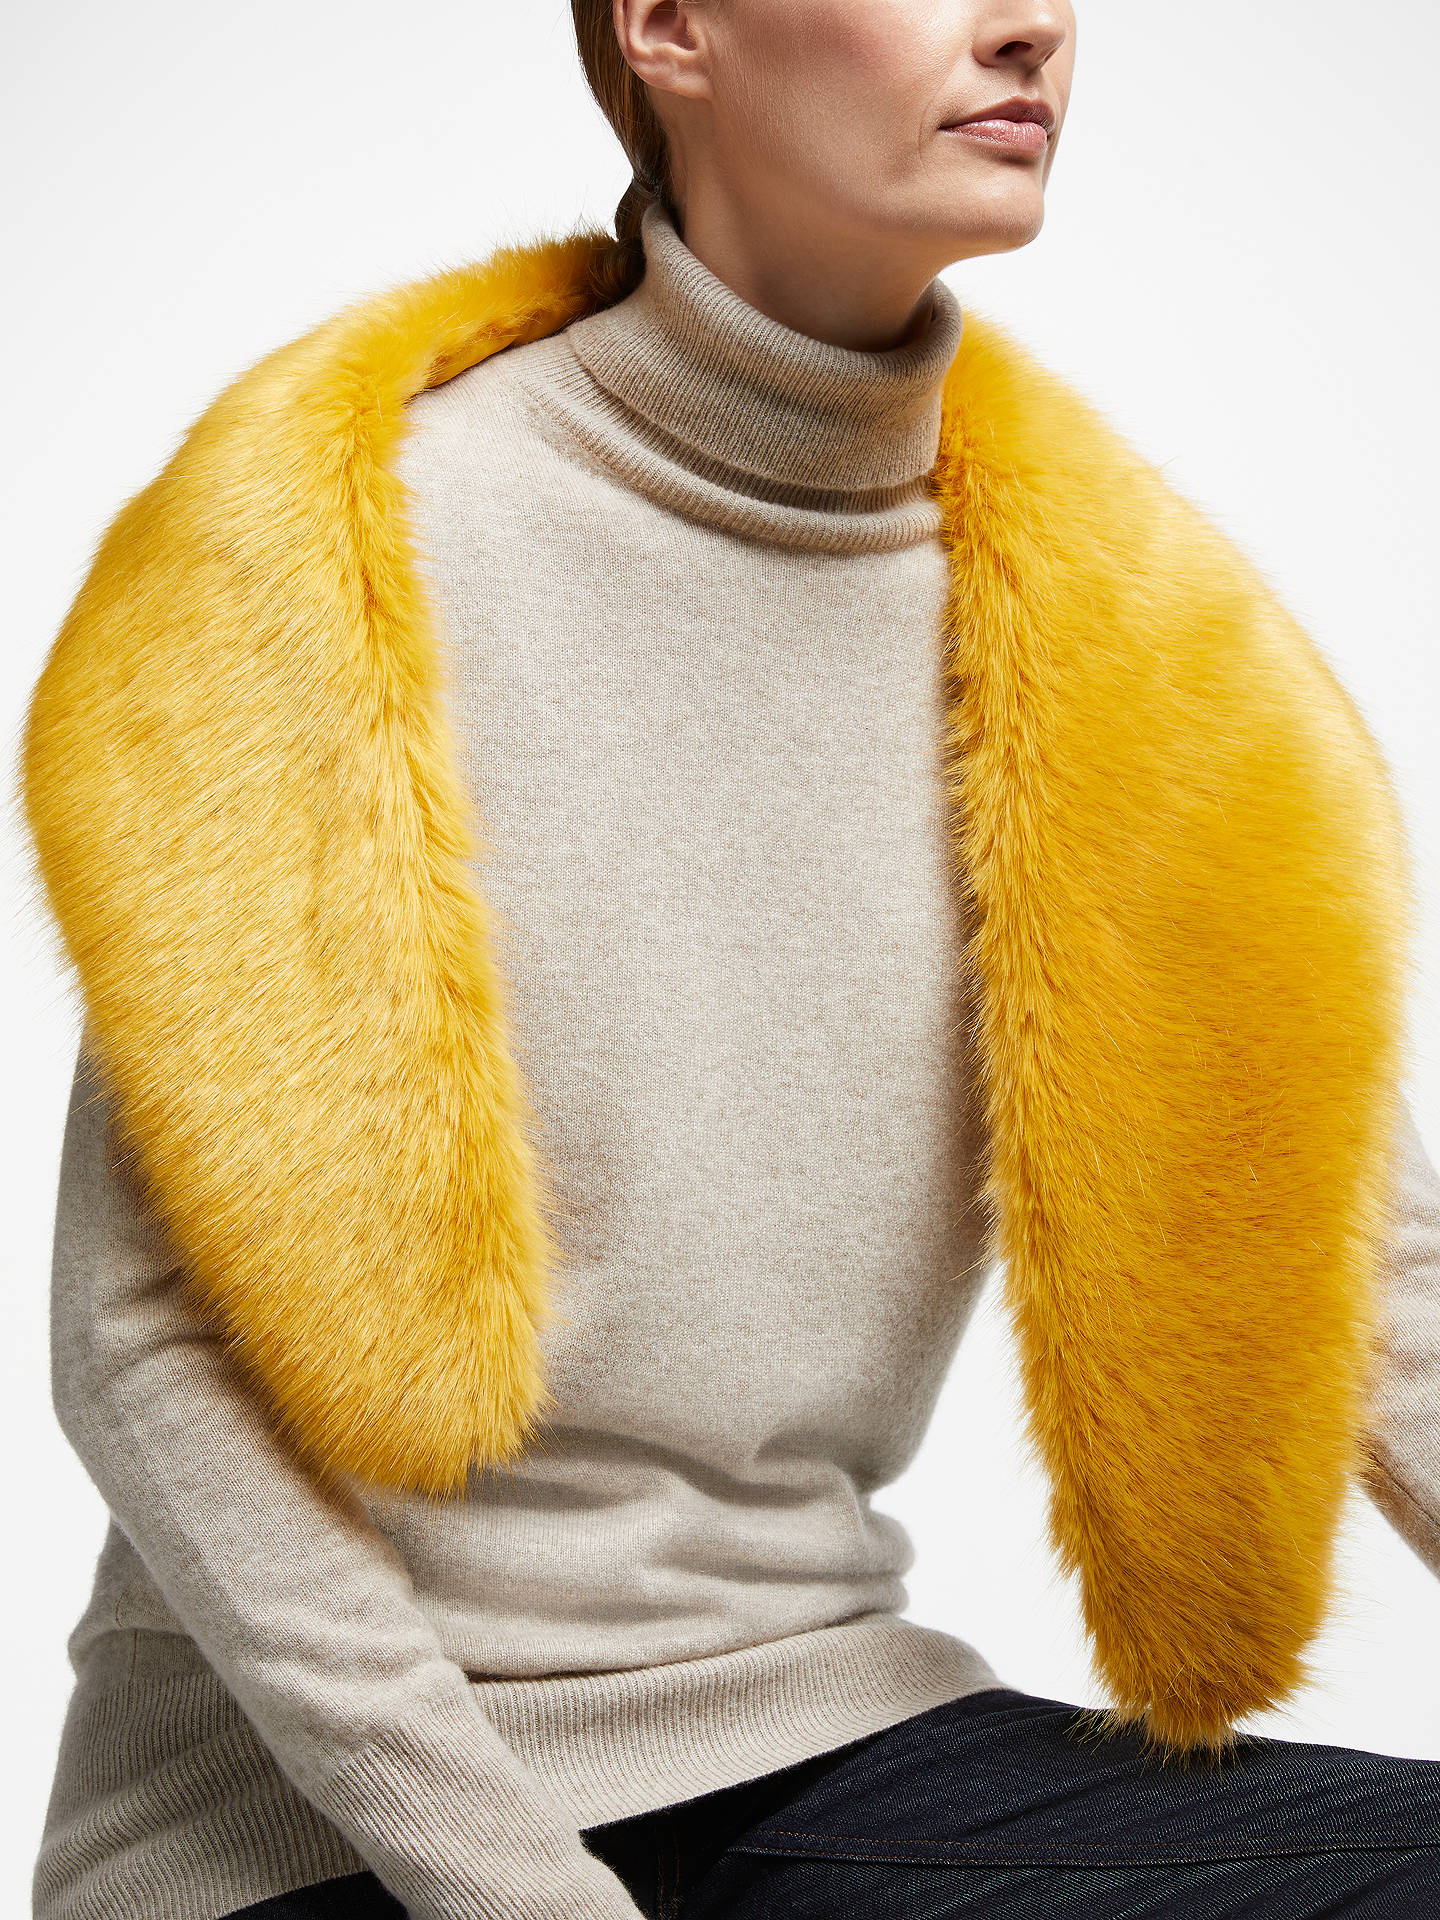 BuyJohn Lewis & Partners Faux Fur Shawl, Yellow Online at johnlewis.com